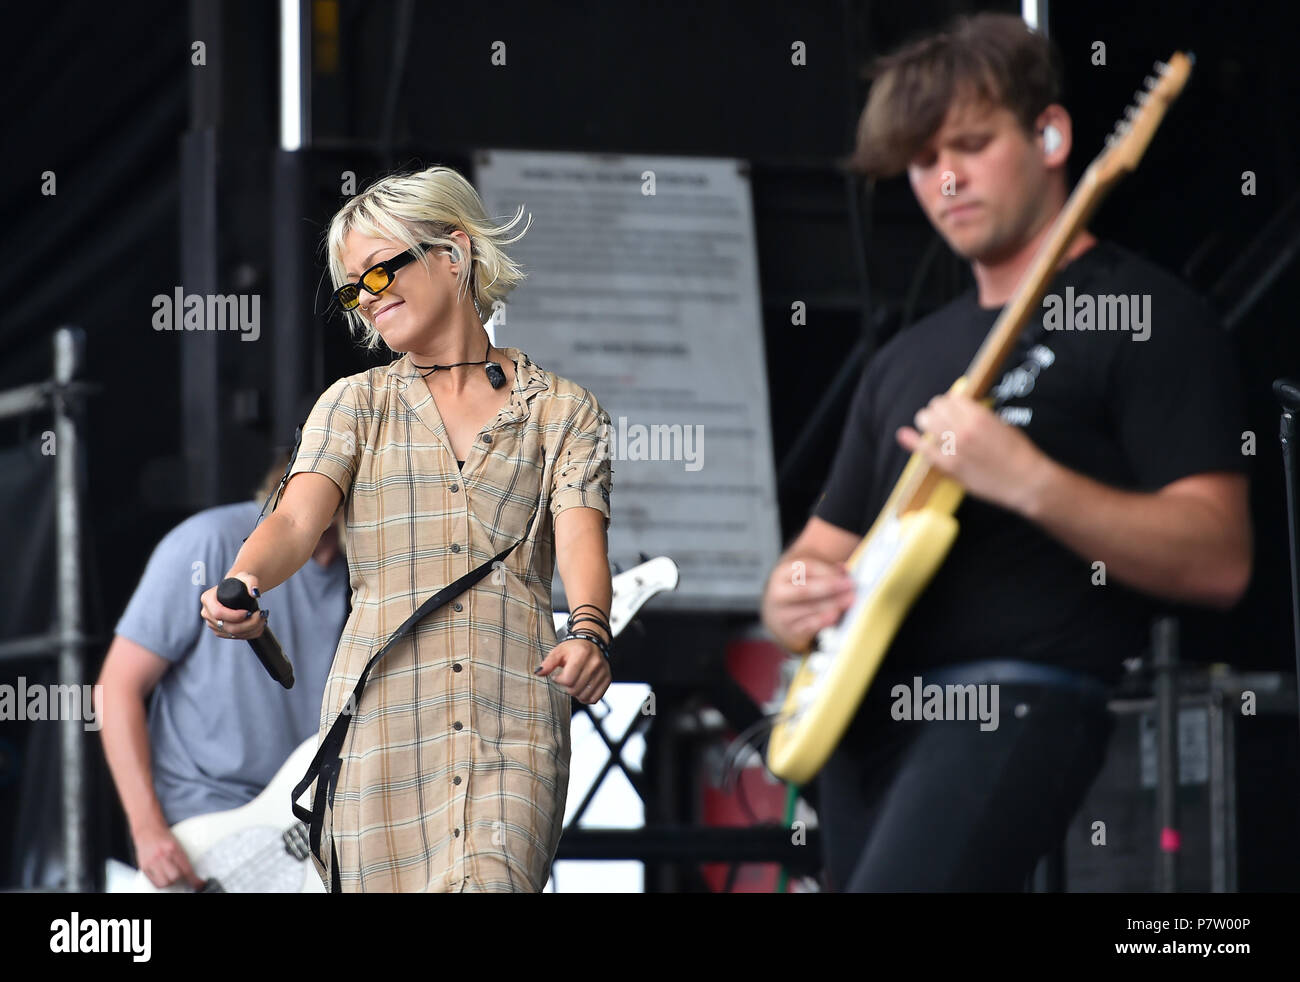 San Antonio, USA. 7th July 2018. JENNA MCDOUGALL of Tonight Alive sings during the Vans Warped Tour June 7, 2018 in San Antonio, Texas. Credit: Robin Jerstad/Alamy Live News - Stock Image